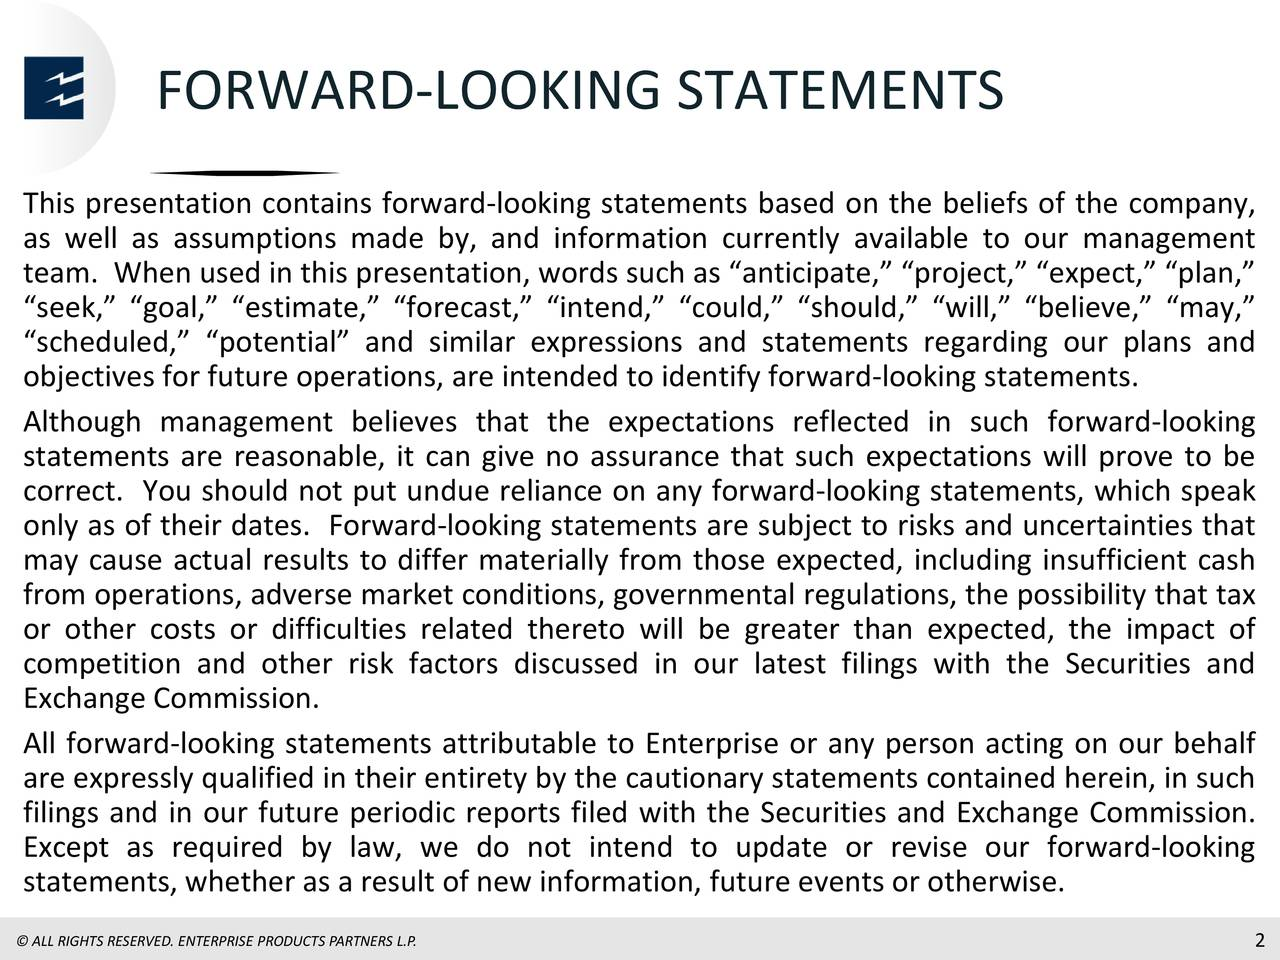 """This presentation contains forward-looking statements based on the beliefs of the company, as well as assumptions made by, and information currently available to our management team. When used in this presentation, words such as """"anticipate,"""" """"project,"""" """"expect,"""" """"plan,"""" """"seek,"""" """"goal,"""" """"estimate,"""" """"forecast,"""" """"intend,"""" """"could,"""" """"should,"""" """"will,"""" """"believe,"""" """"may,"""" """"scheduled,"""" """"potential"""" and similar expressions and statements regarding our plans and objectives for future operations, are intended to identify forward-looking statements. Although management believes that the expectations reflected in such forward-looking statements are reasonable, it can give no assurance that such expectations will prove to be correct. You should not put undue reliance on any forward-looking statements, which speak only as of their dates. Forward-looking statements are subject to risks and uncertainties that may cause actual results to differ materially from those expected, including insufficient cash from operations, adverse market conditions, governmental regulations, the possibility that tax or other costs or difficulties related thereto will be greater than expected, the impact of competition and other risk factors discussed in our latest filings with the Securities and Exchange Commission. All forward-looking statements attributable to Enterprise or any person acting on our behalf are expressly qualified in their entirety by the cautionary statements contained herein, in such filings and in our future periodic reports filed with the Securities and Exchange Commission. Except as required by law, we do not intend to update or revise our forward-looking statements, whether as a result of new information, future events or otherwise."""